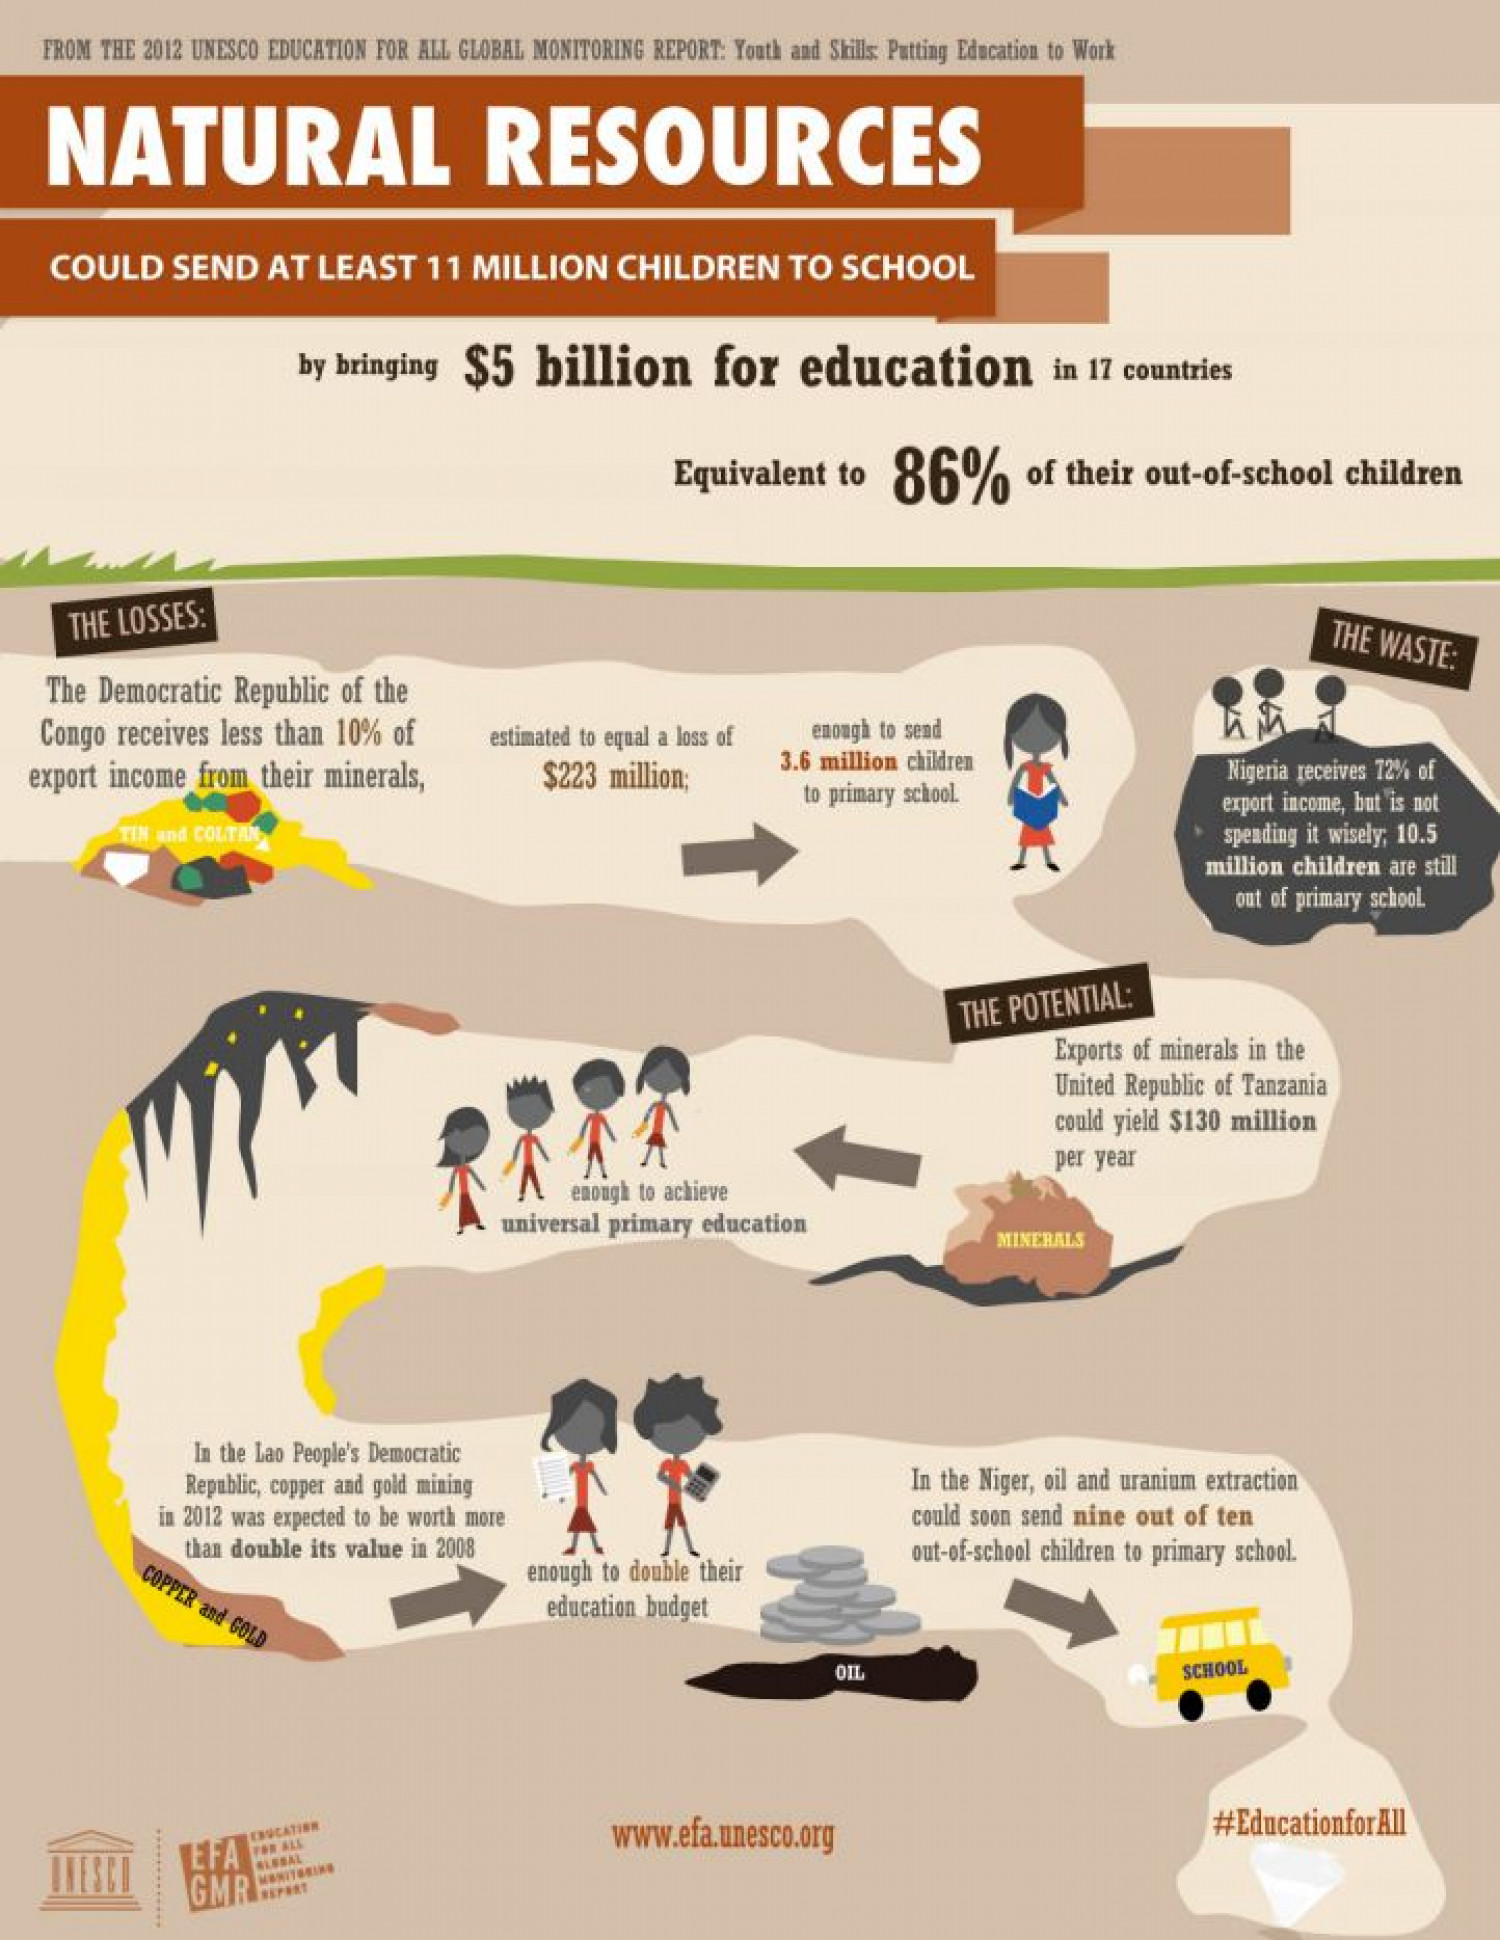 Natural Resources Could Send At Least 11 Million Children